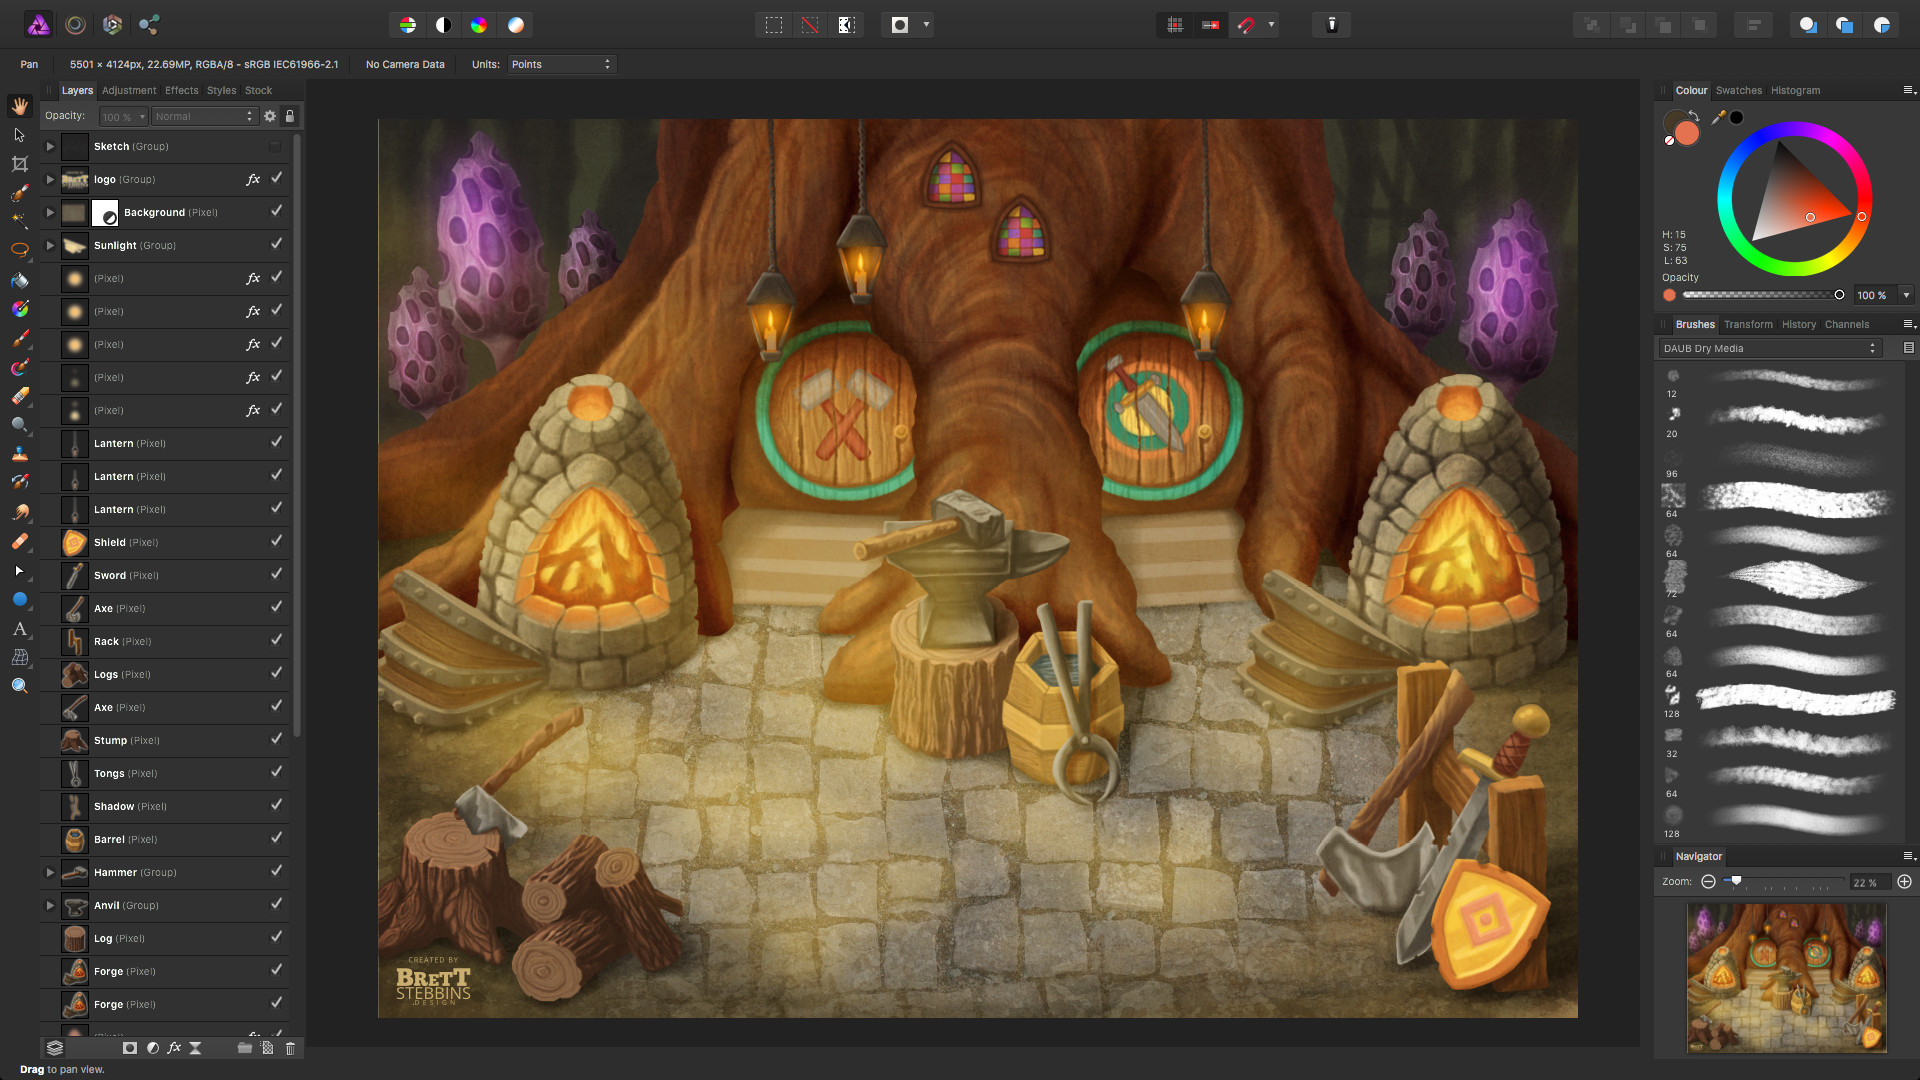 Process Step 4 - Add final details and light effects